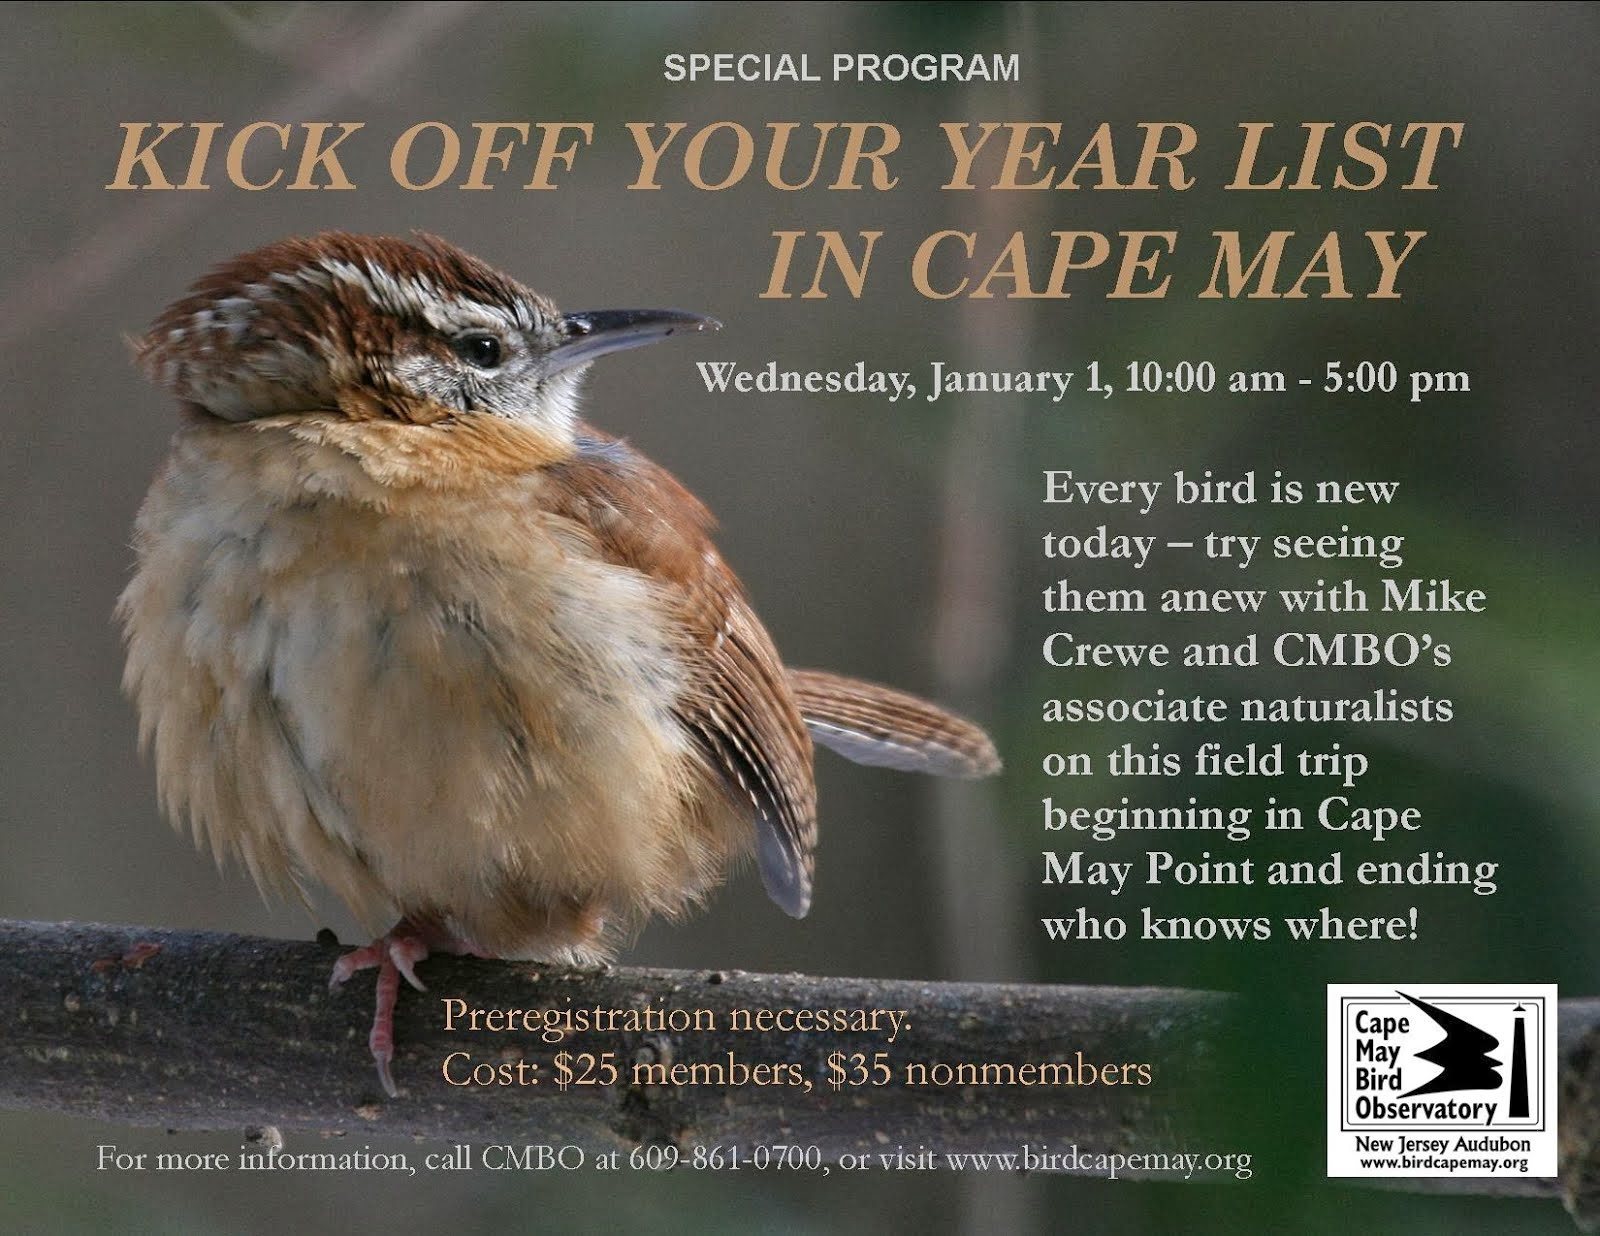 Kick Off Your Year List in Cape May, January 1st